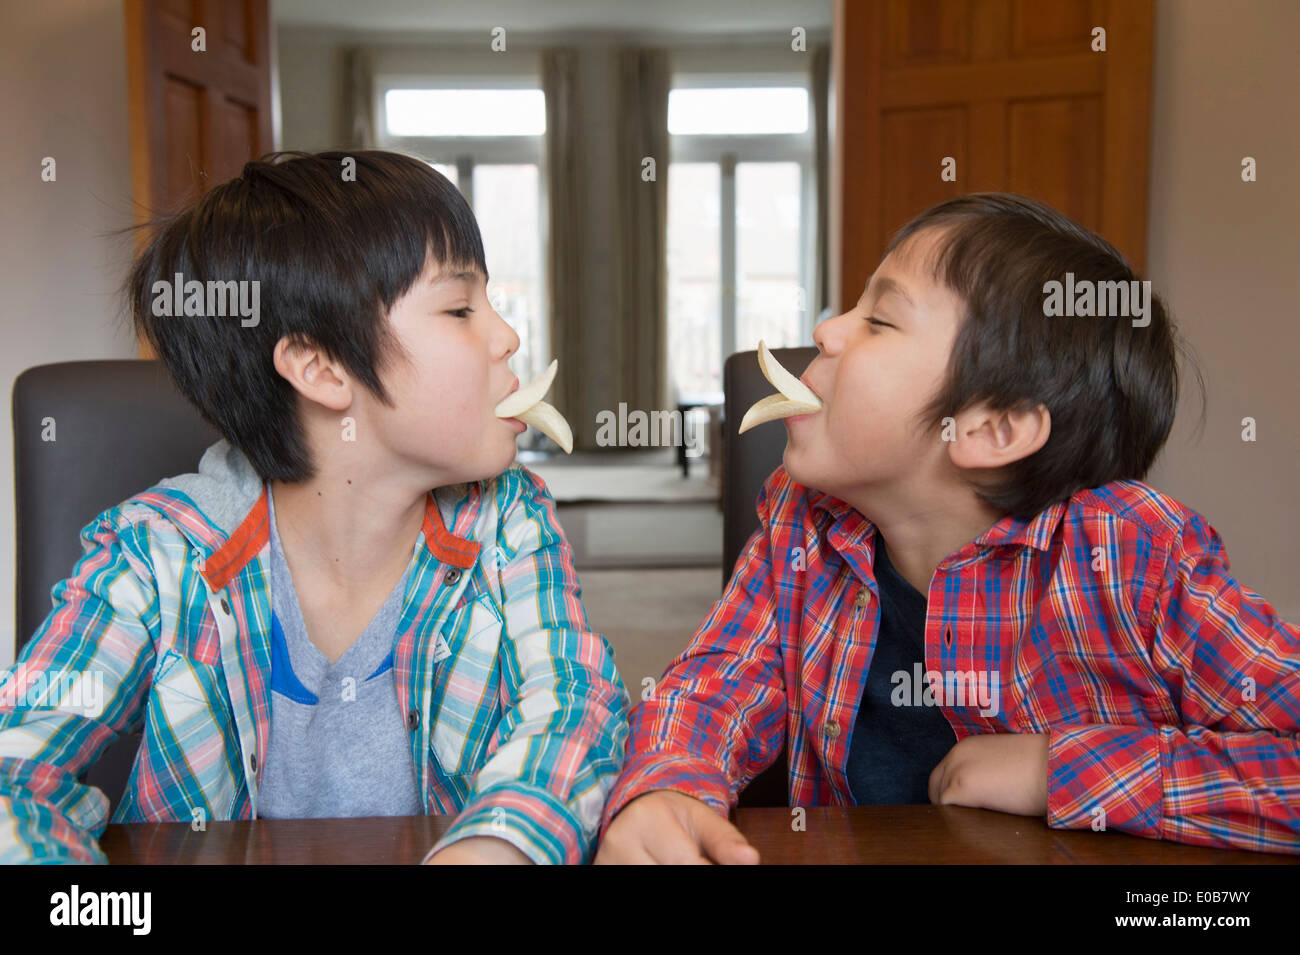 Brothers imitating bird beak with crisps - Stock Image